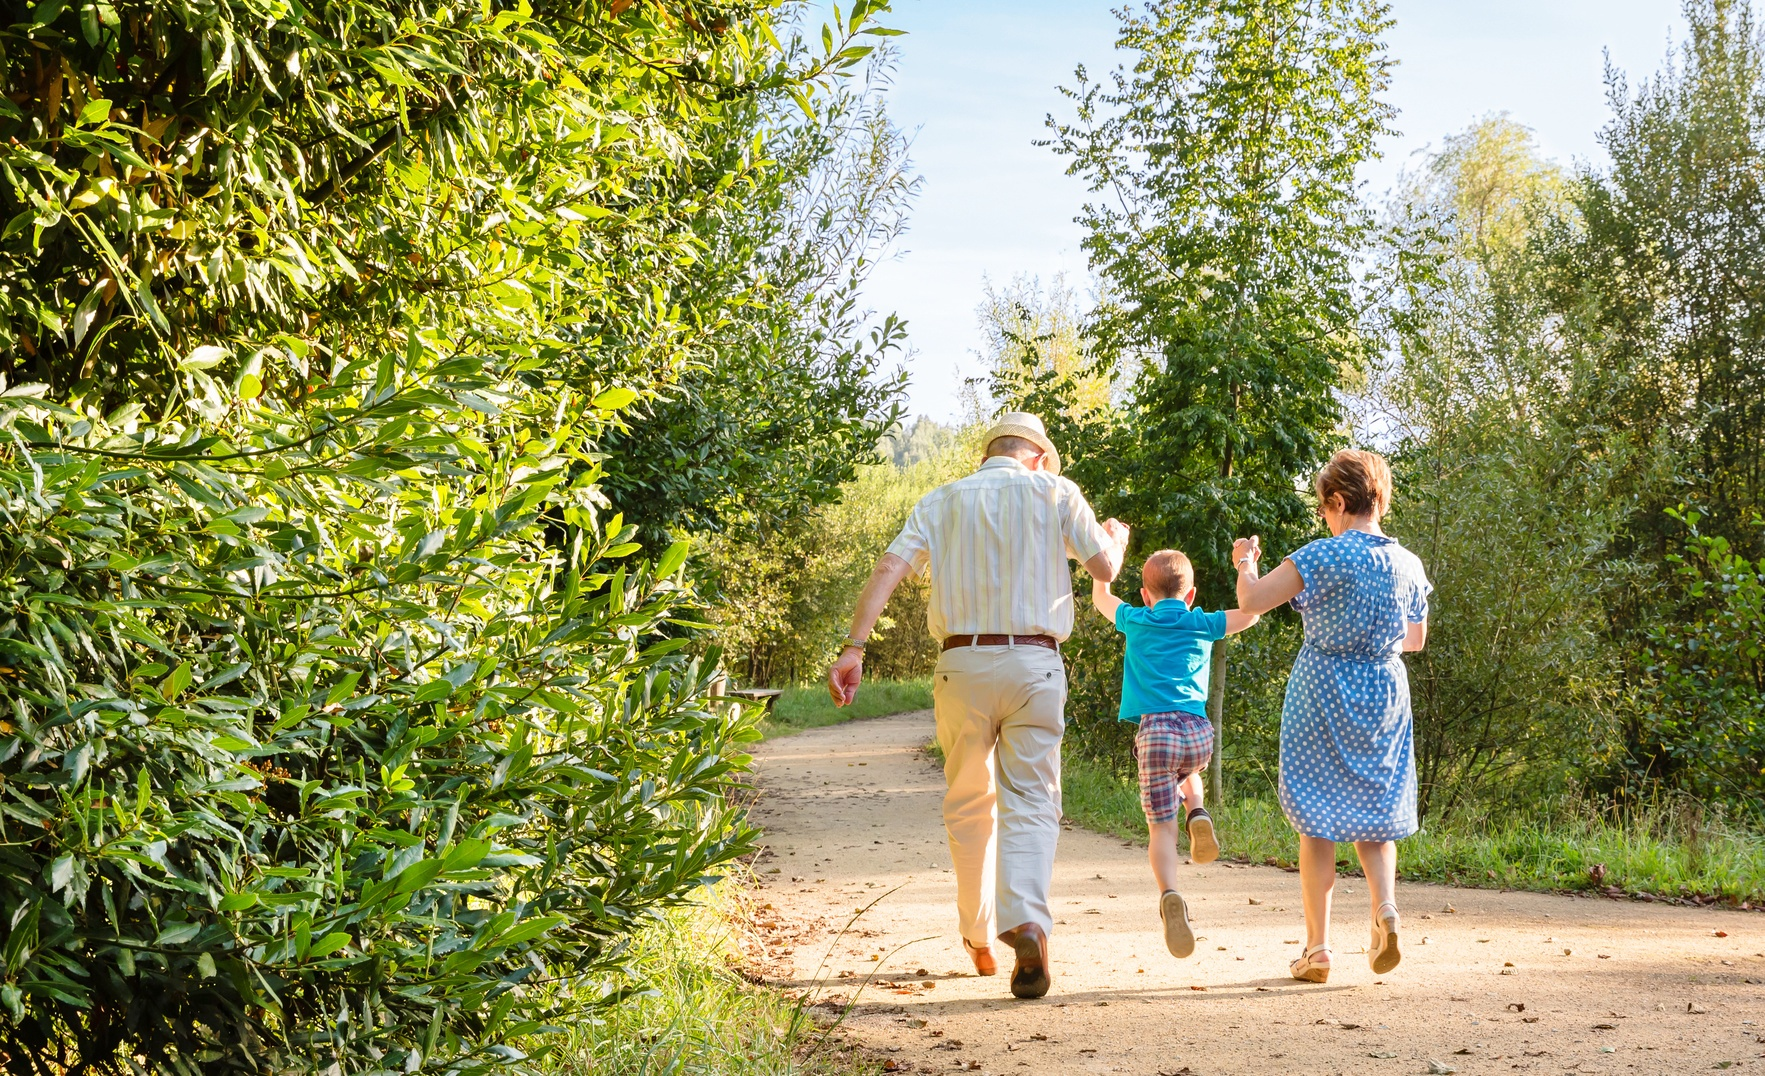 Grandparents walking with child